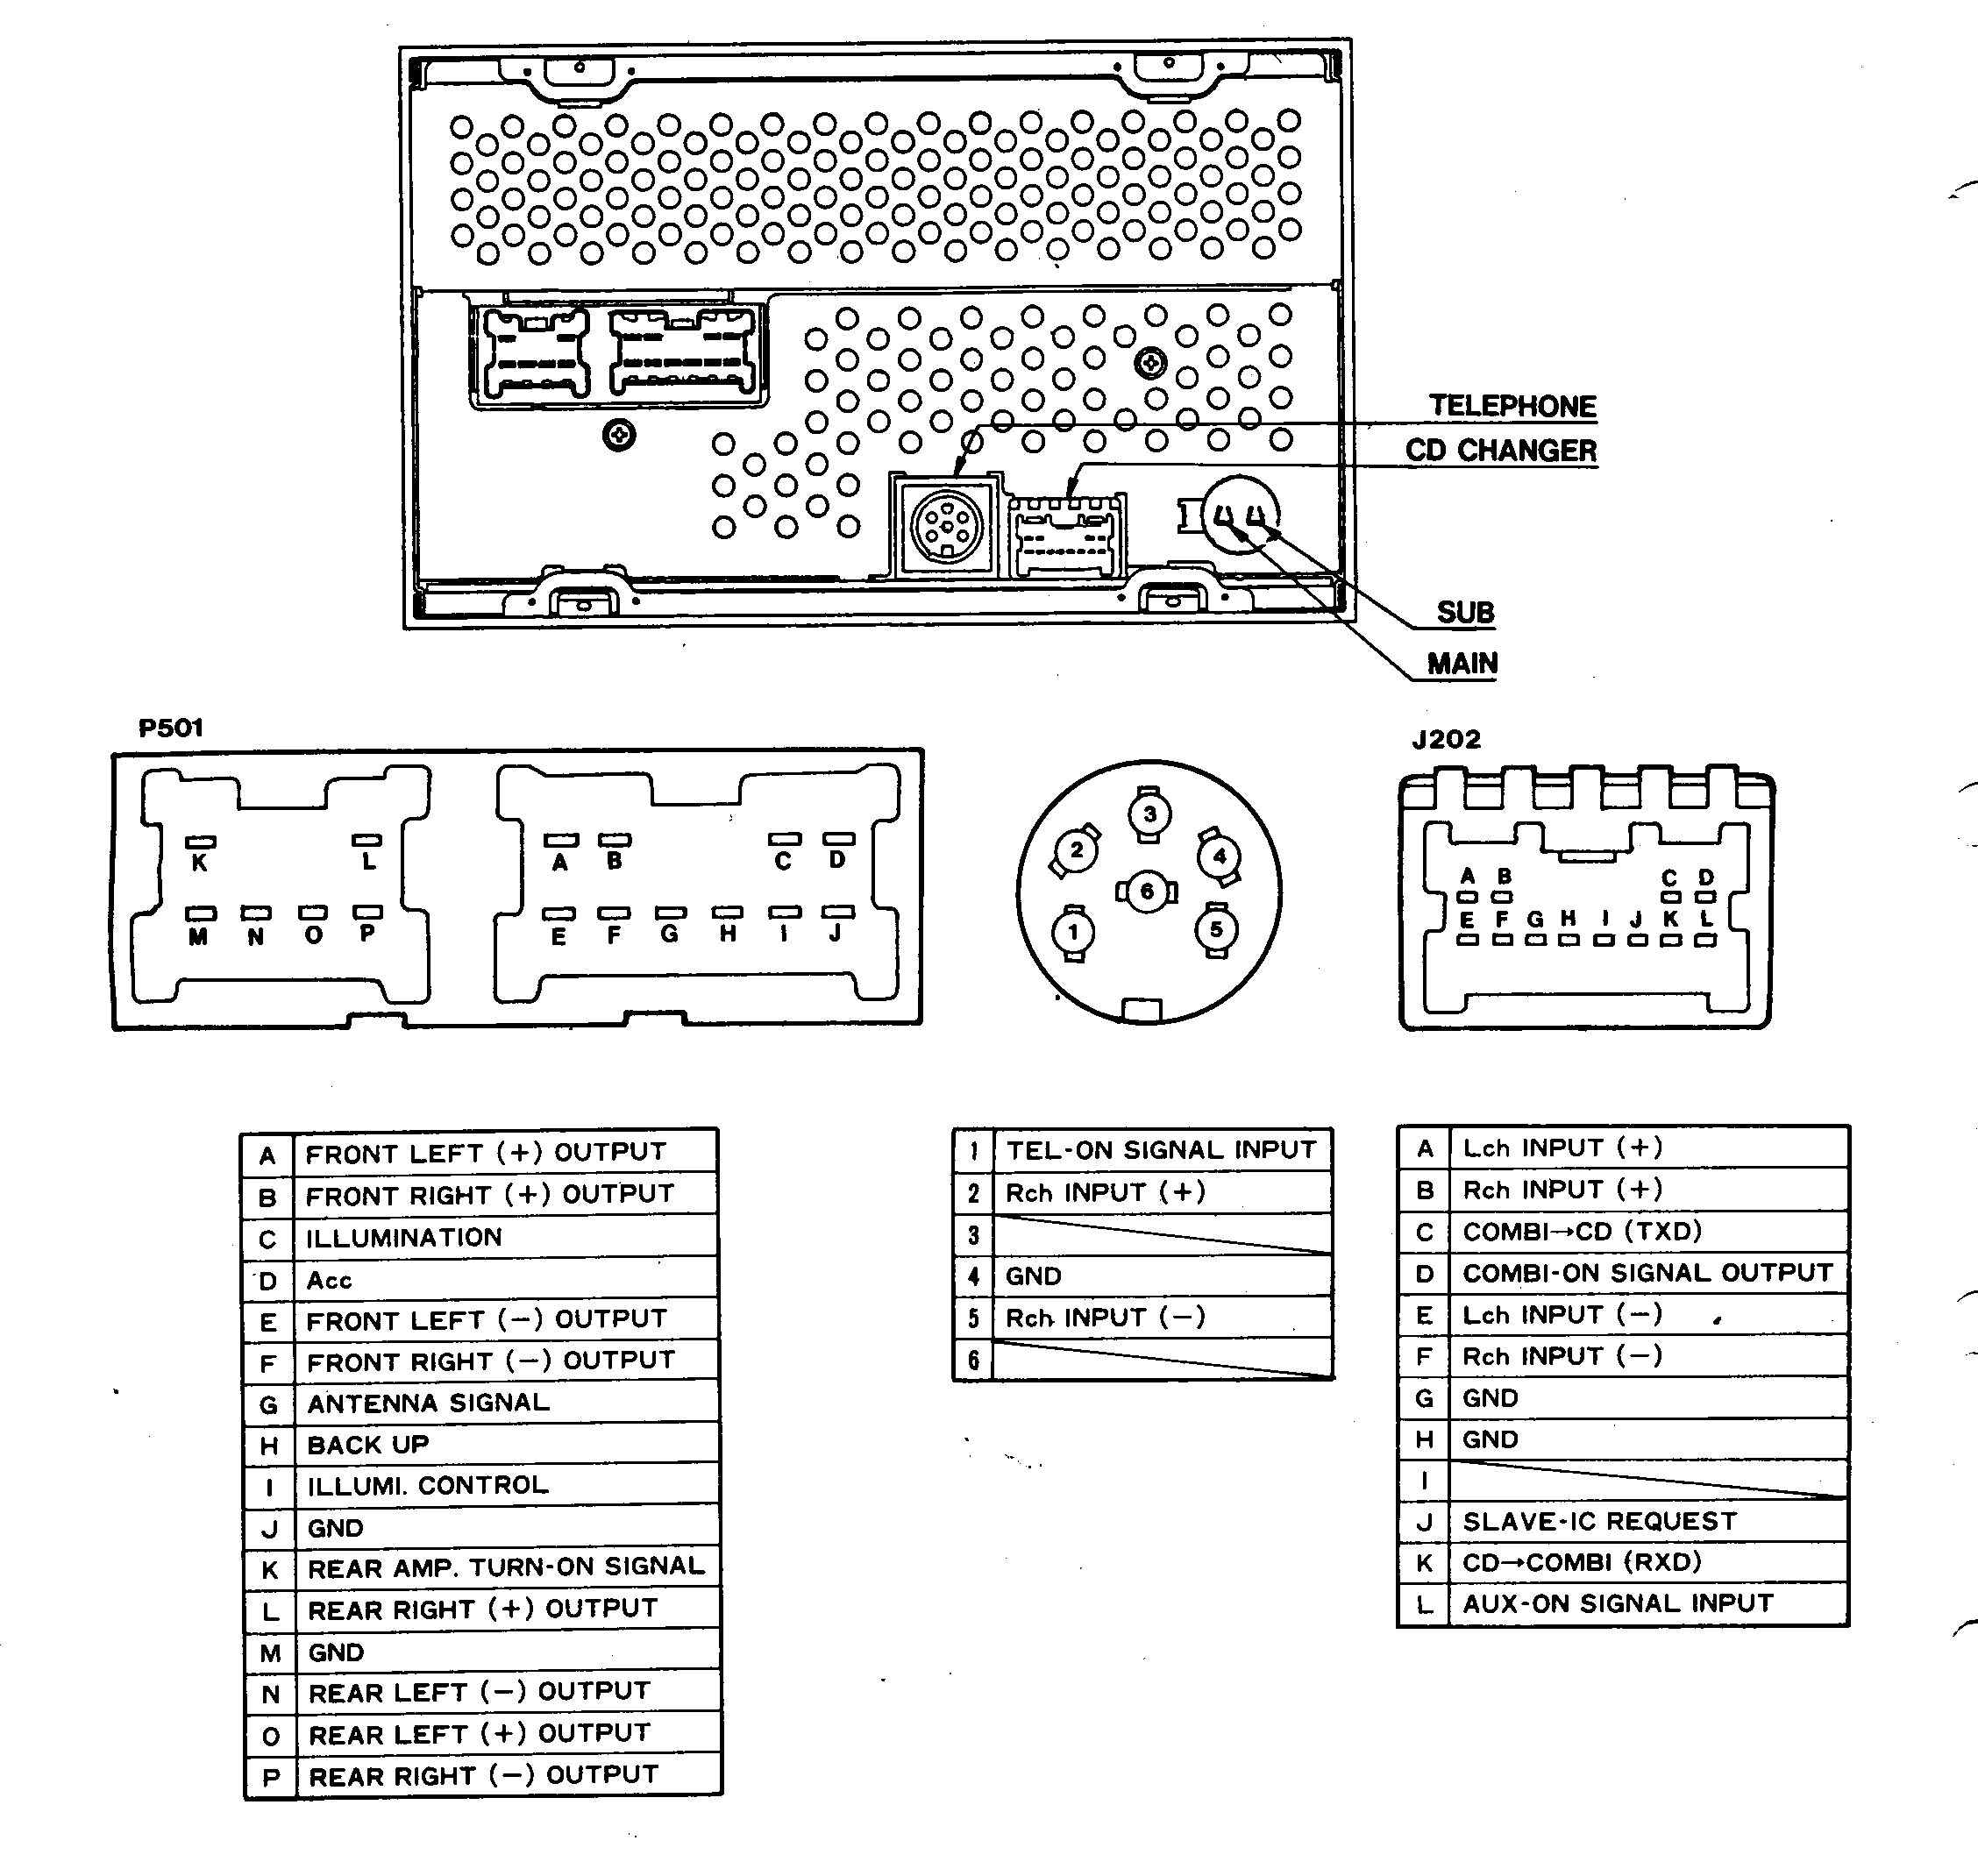 1993 ford explorer stereo wiring diagram with Nissan Car Radio Wiring Connector on Exploded View Results furthermore 2002 Ford F150 Wiring Schematic Pdf additionally 4okqq 1998 Mercury Mountaineer Fuel Injection A Sudden Quit Working likewise 120491 97 Ranger 4x4 Wiring Diagram moreover 94 Ford Escort Wiring Schematic.